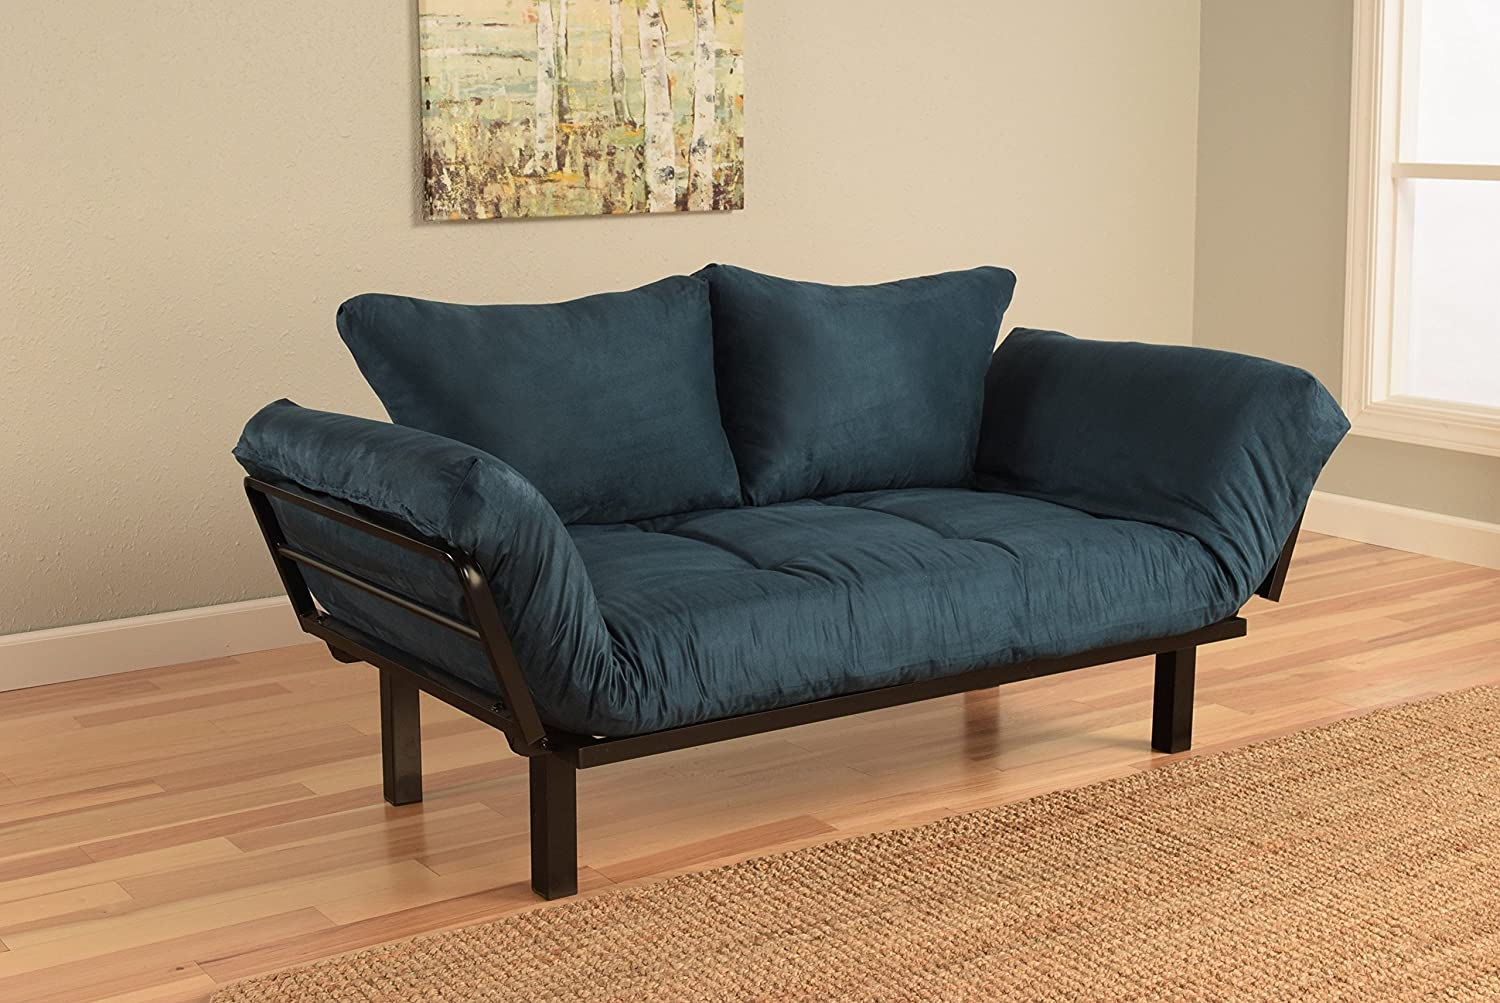 sale homes image ideas amazoncapricornradio of amazon futon smart decorate for beds futons